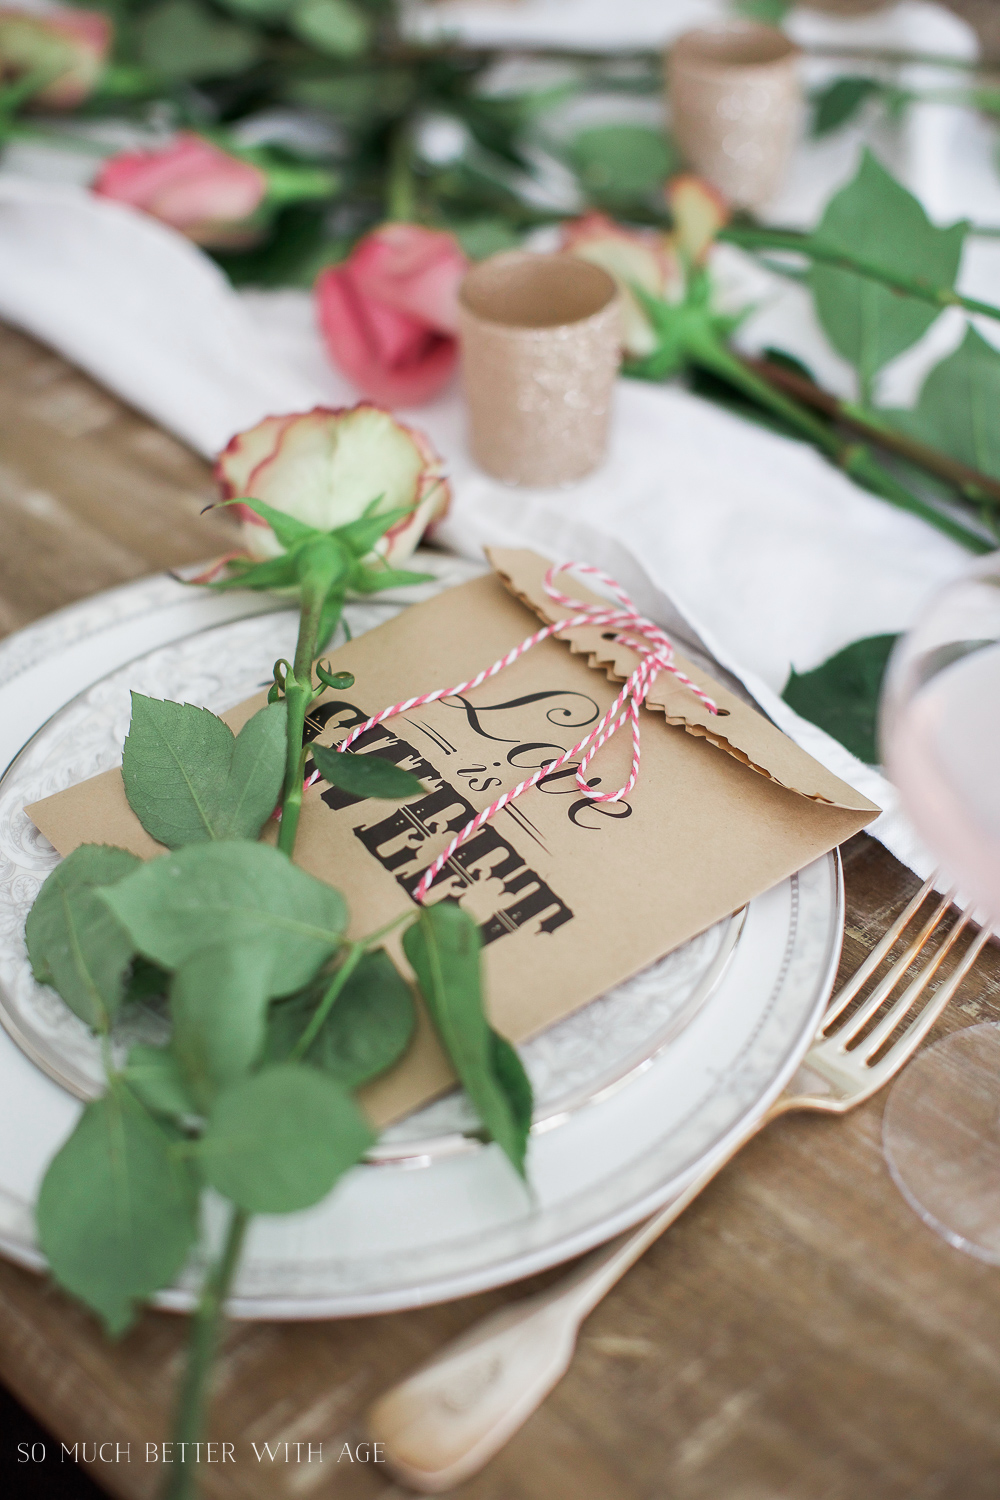 Pretty pink roses Valentine's Day table setting / cute gift bags on table - So Much Better With Age